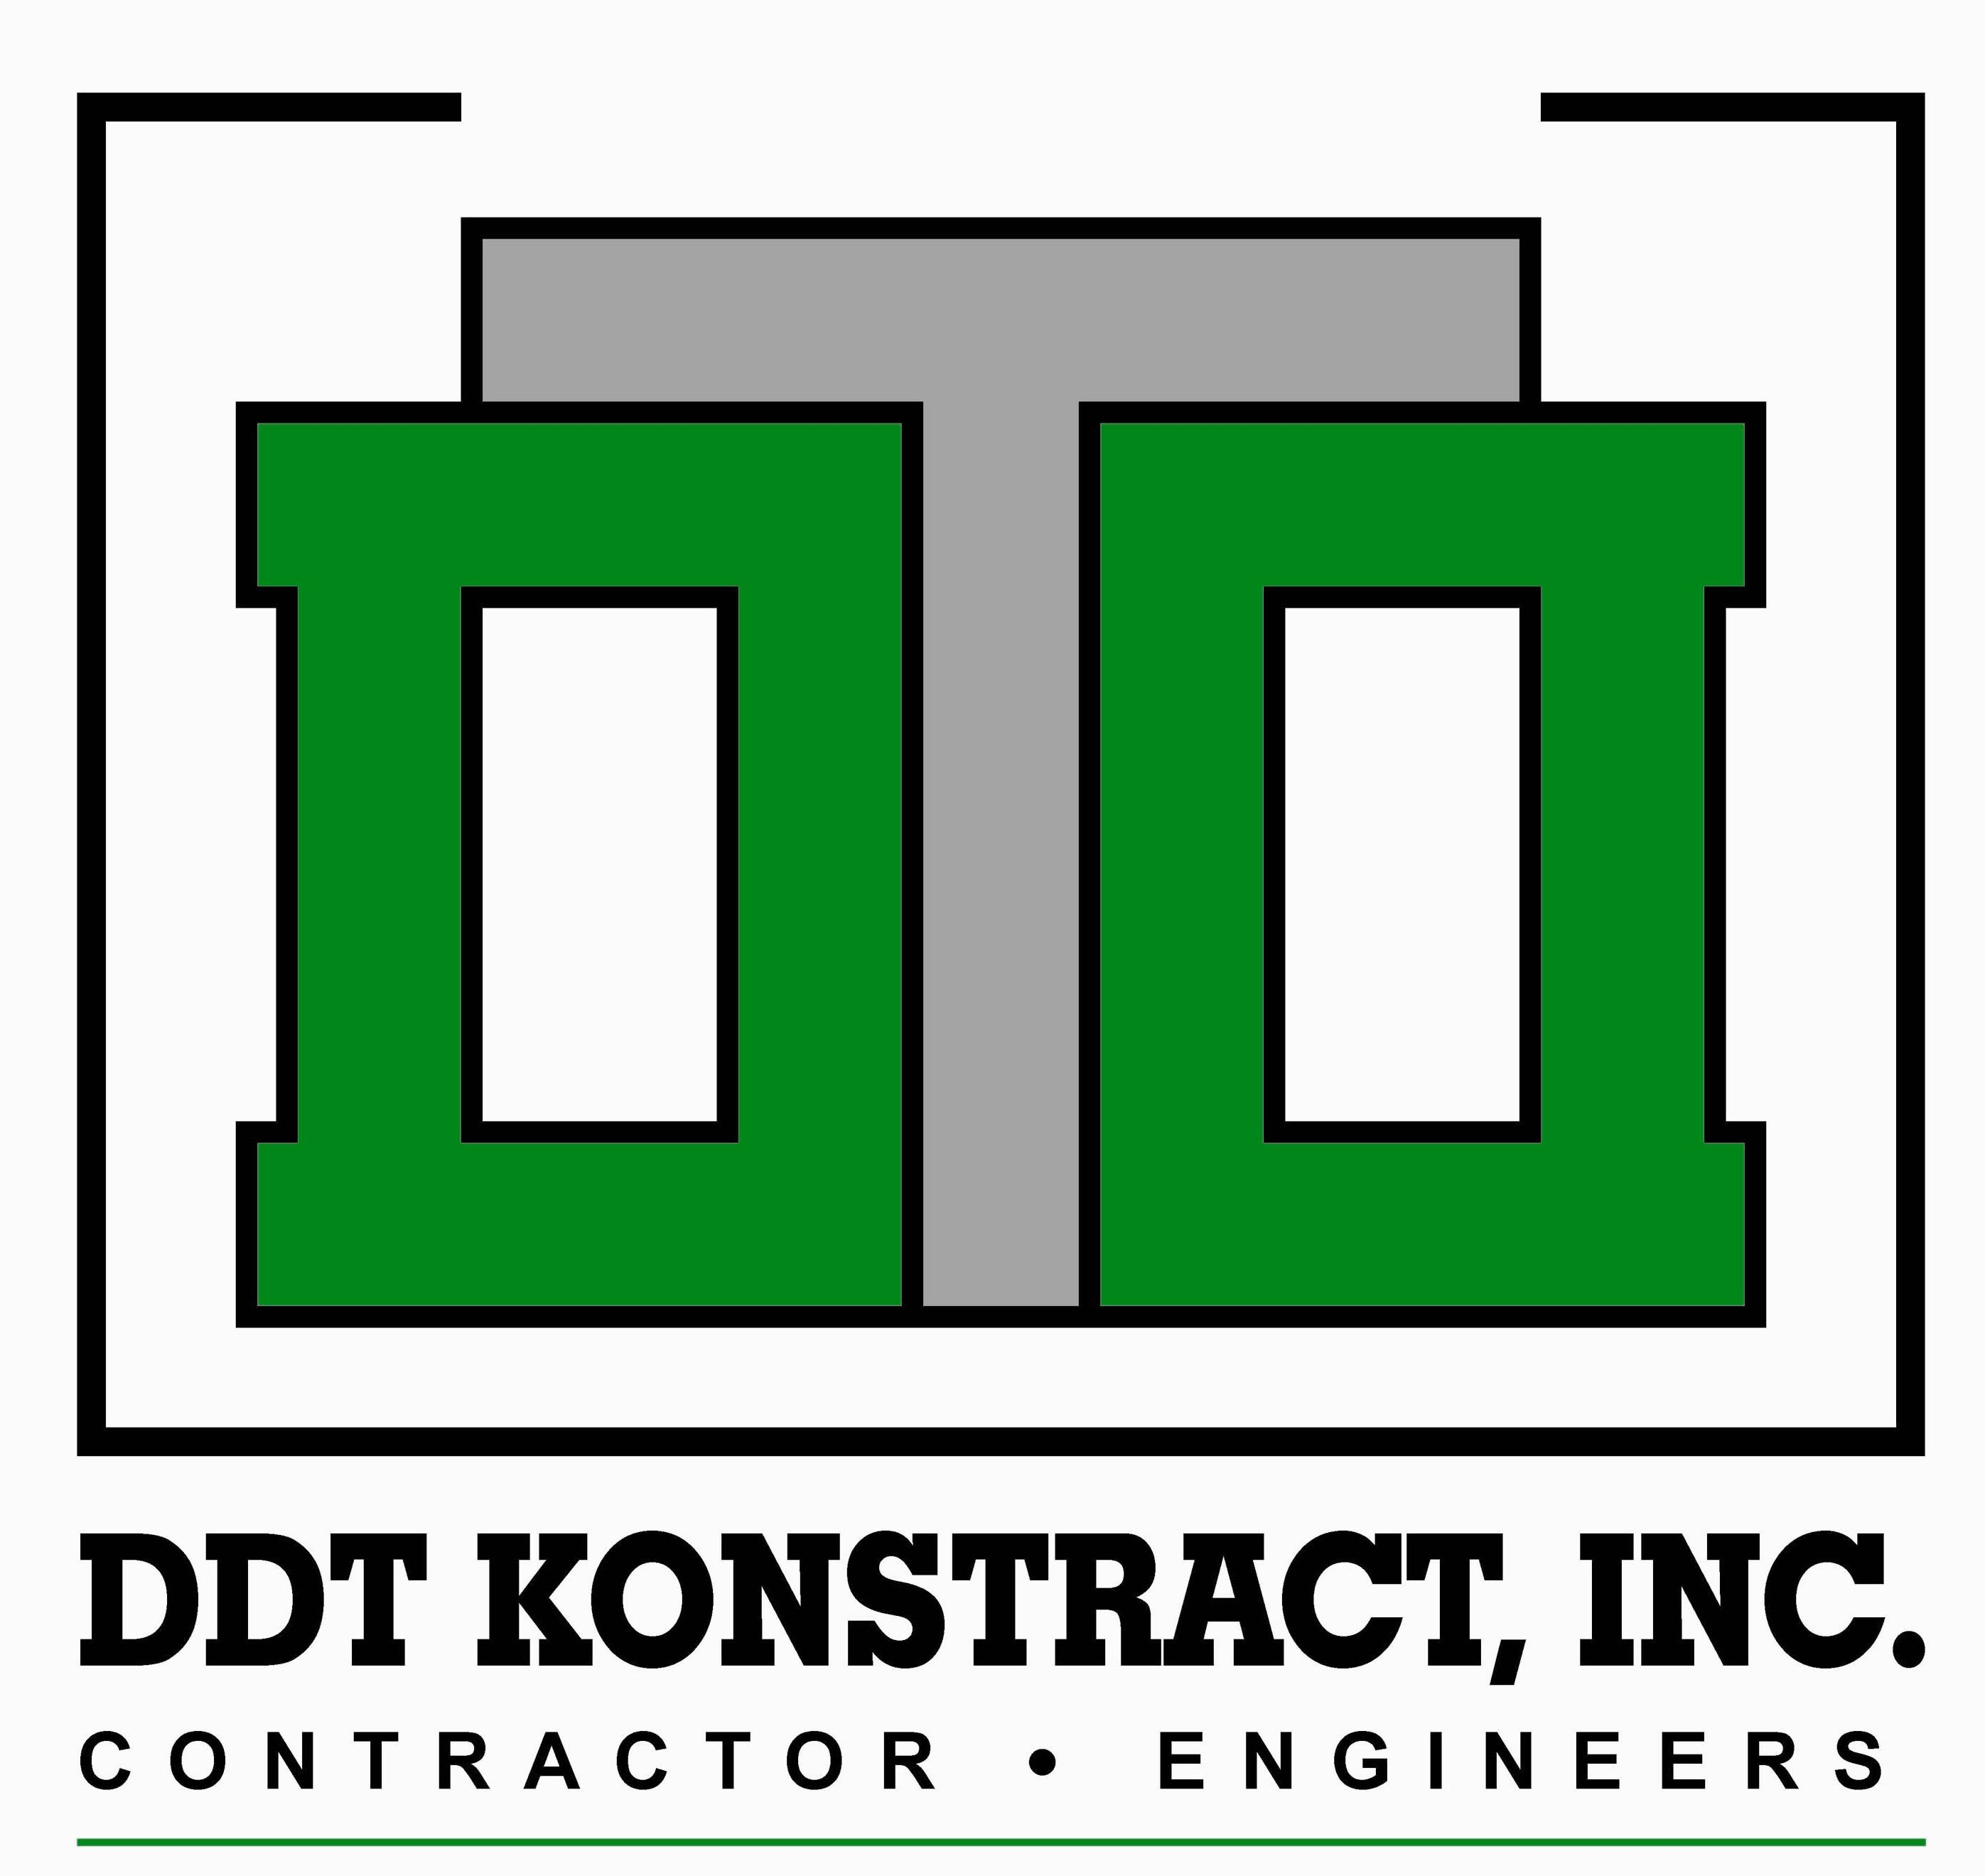 OUR HISTORY DDT KONSTRACT, INC. (DDTKI) is a duly